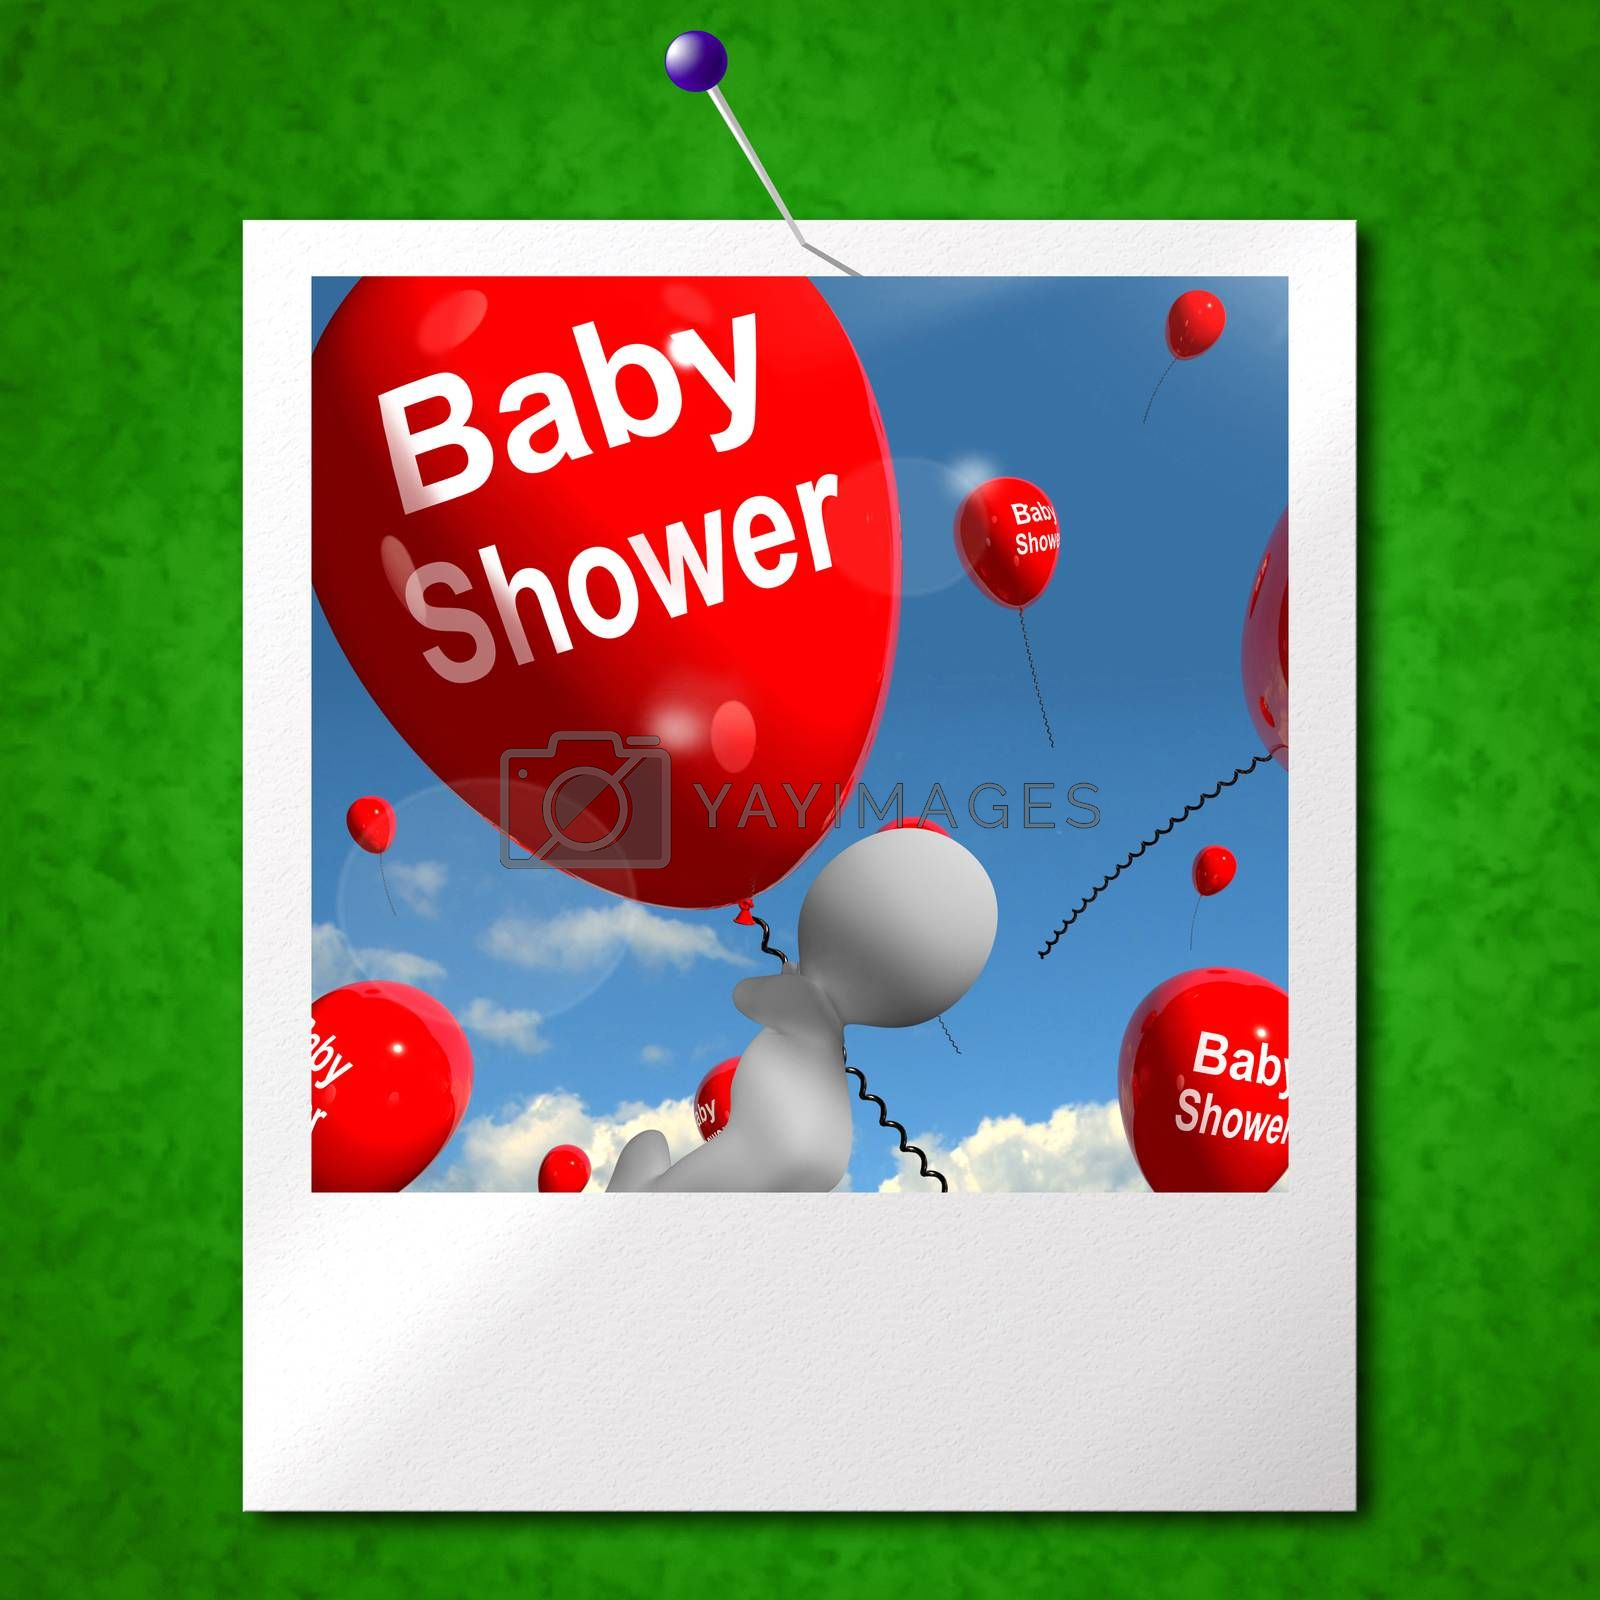 Baby Shower Balloons Photo Showing Cheerful Parties and Festivities